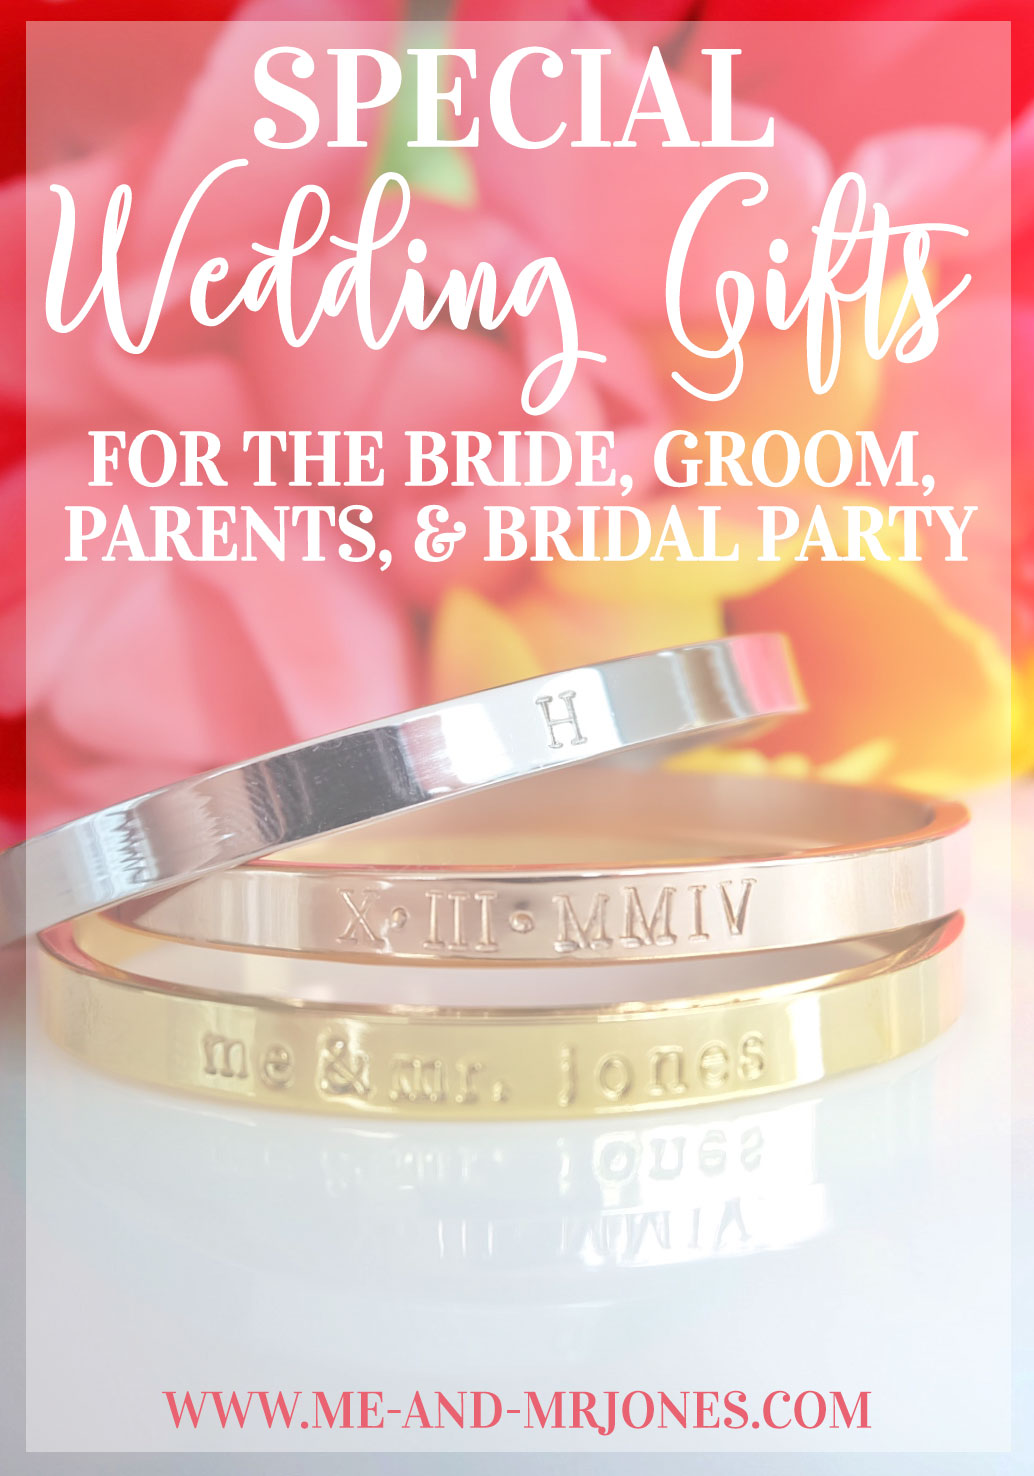 special wedding gifts for the bride groom parents bridal party wedding gifts for parents Special wedding gifts for the bride groom parents and bridal party